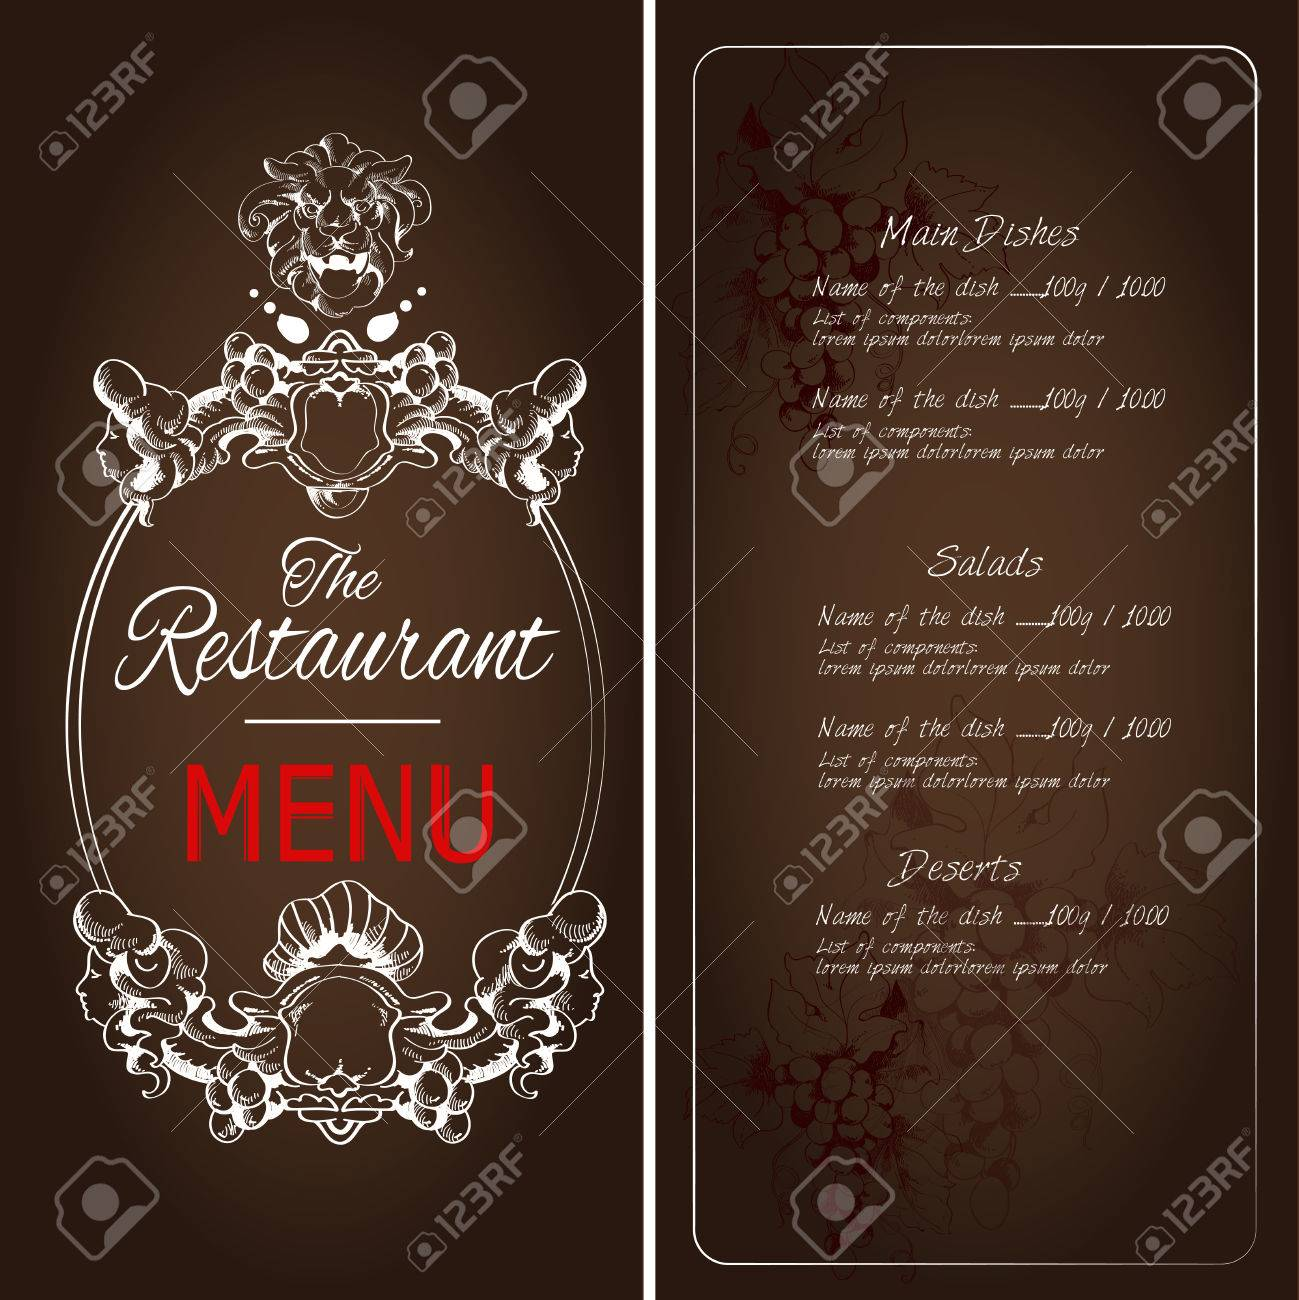 retro vintage restaurant menu dark background template with lion